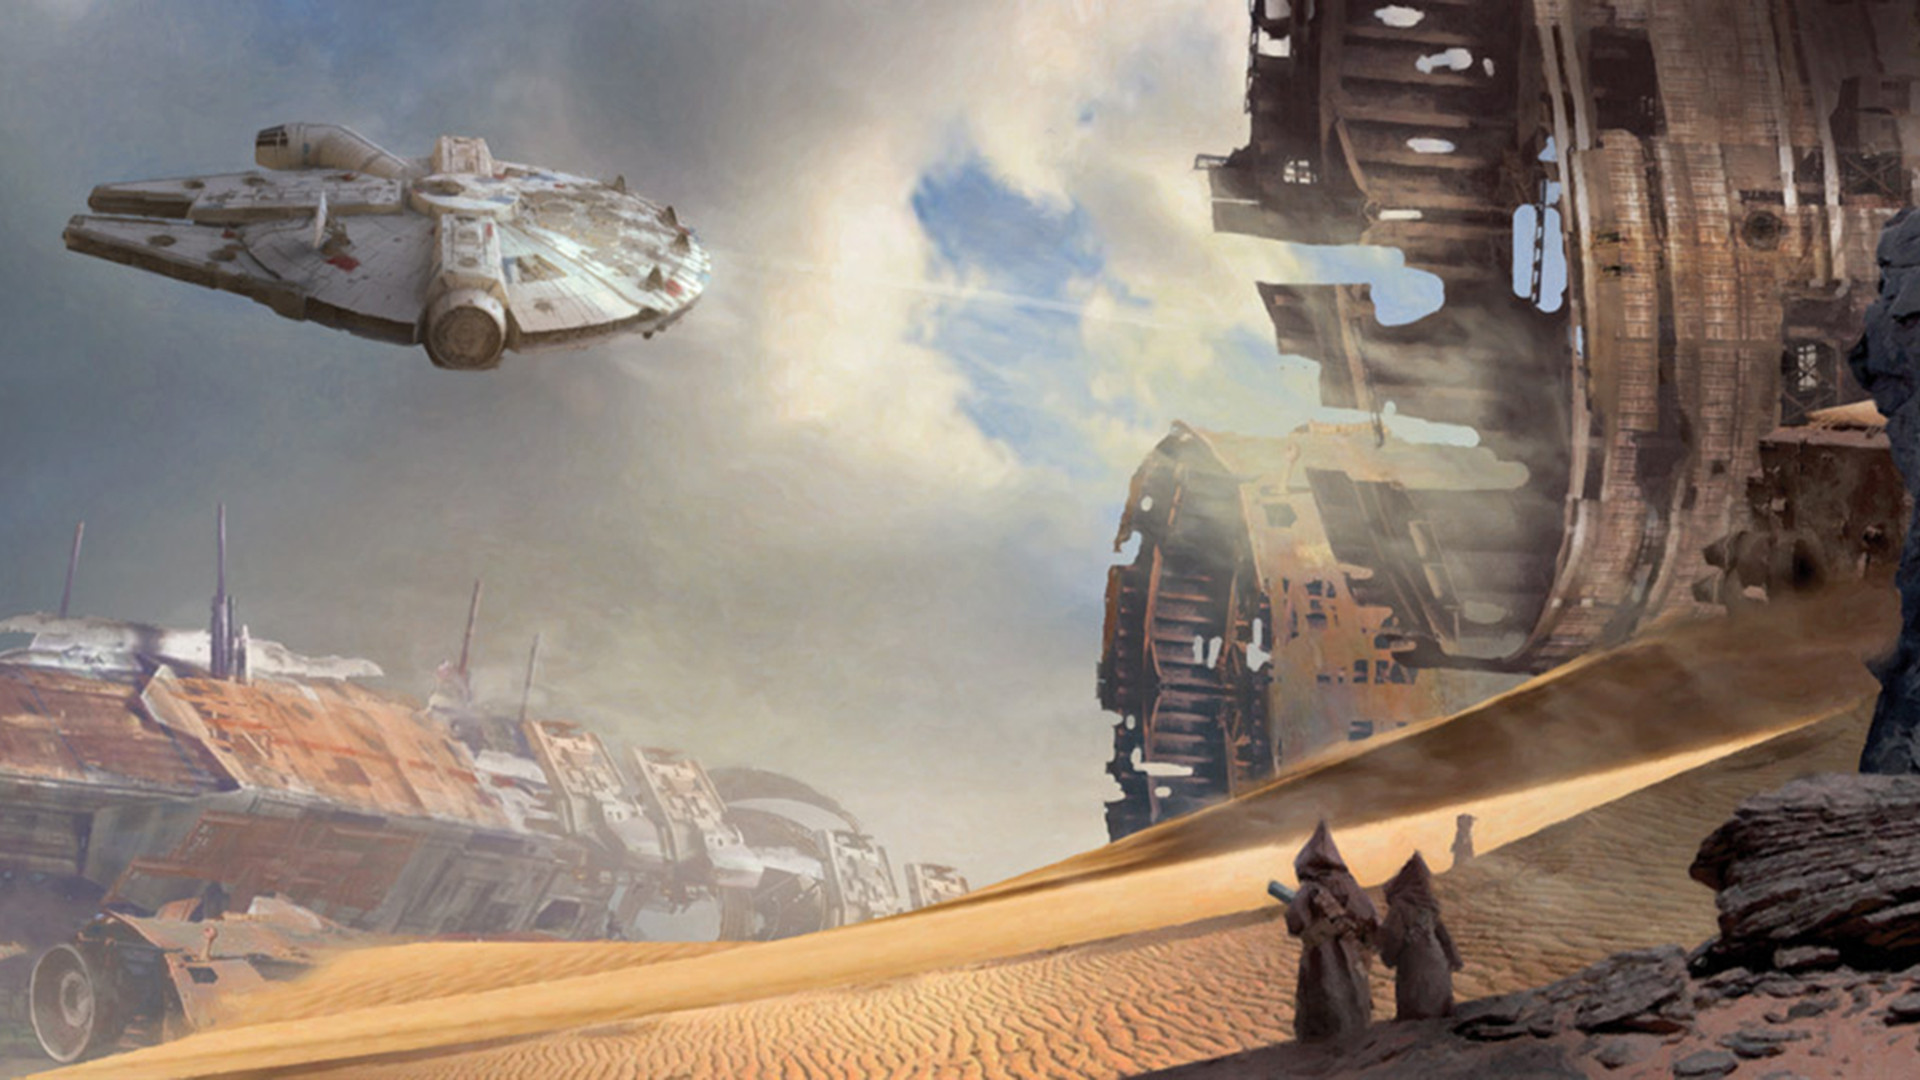 World Wallpaper Sci Fi Wallpaper: Science Fiction Art Wallpaper (69+ Images